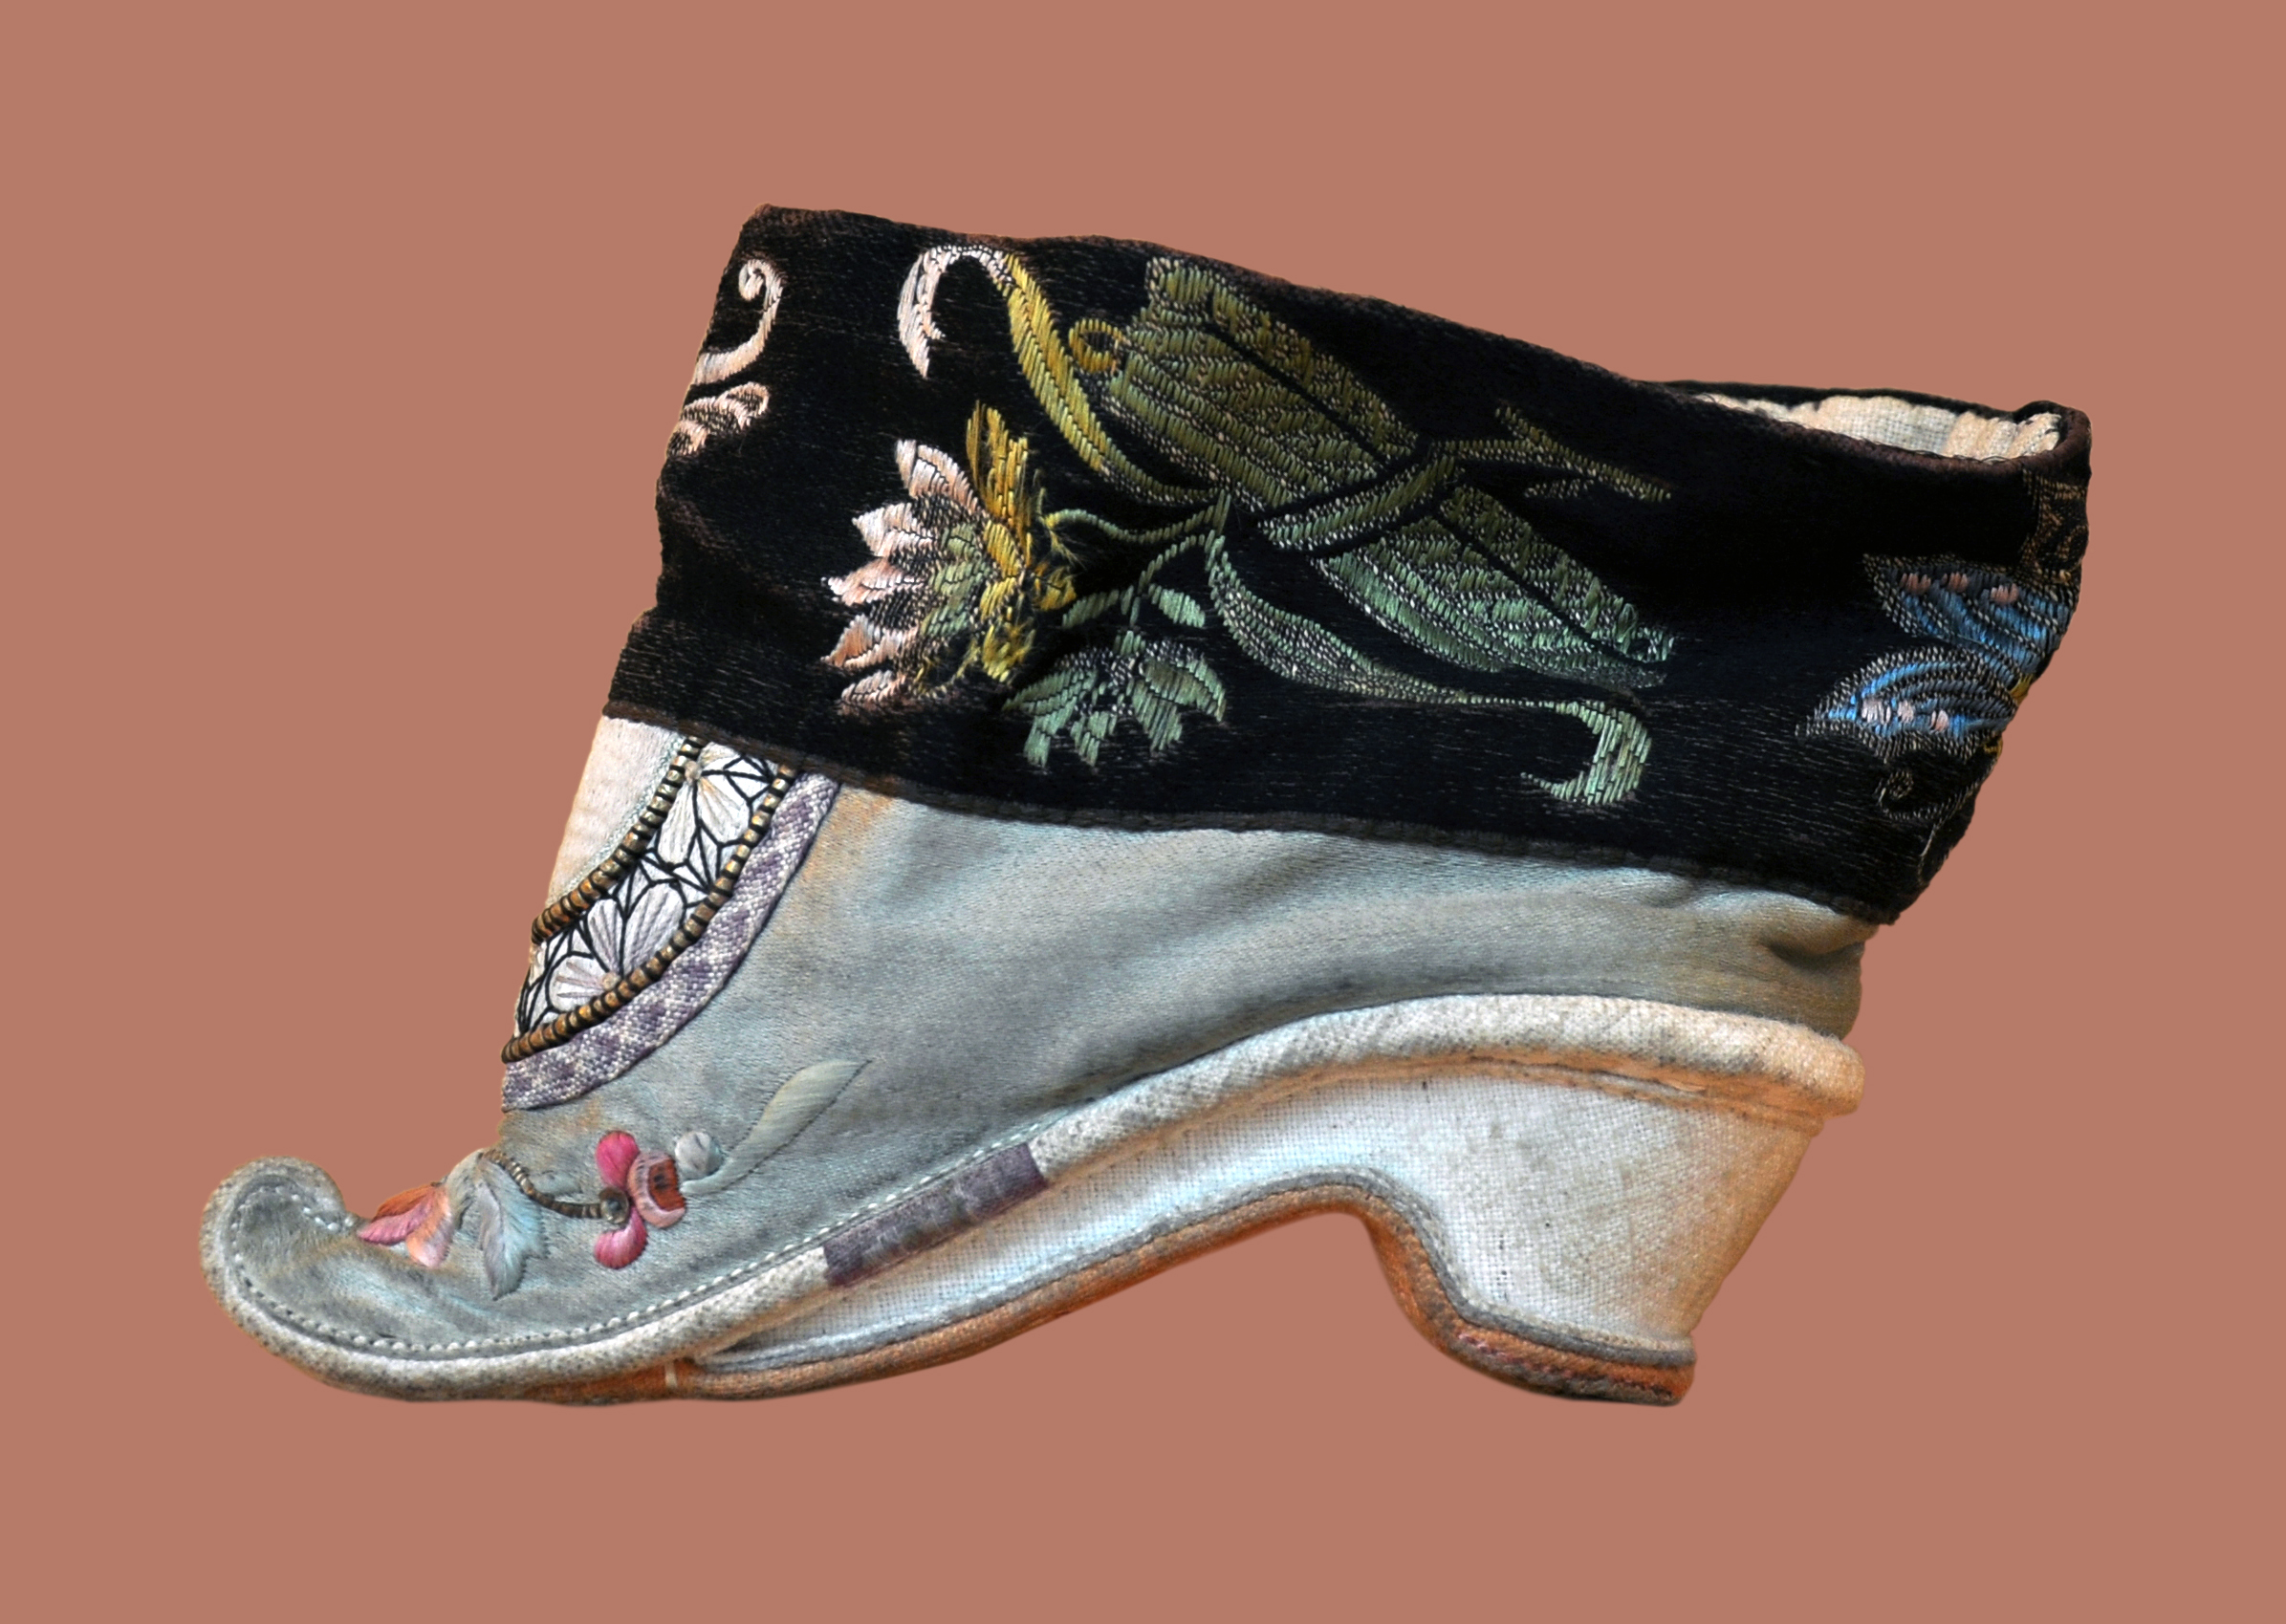 Shoe used by women who took part in foot binding